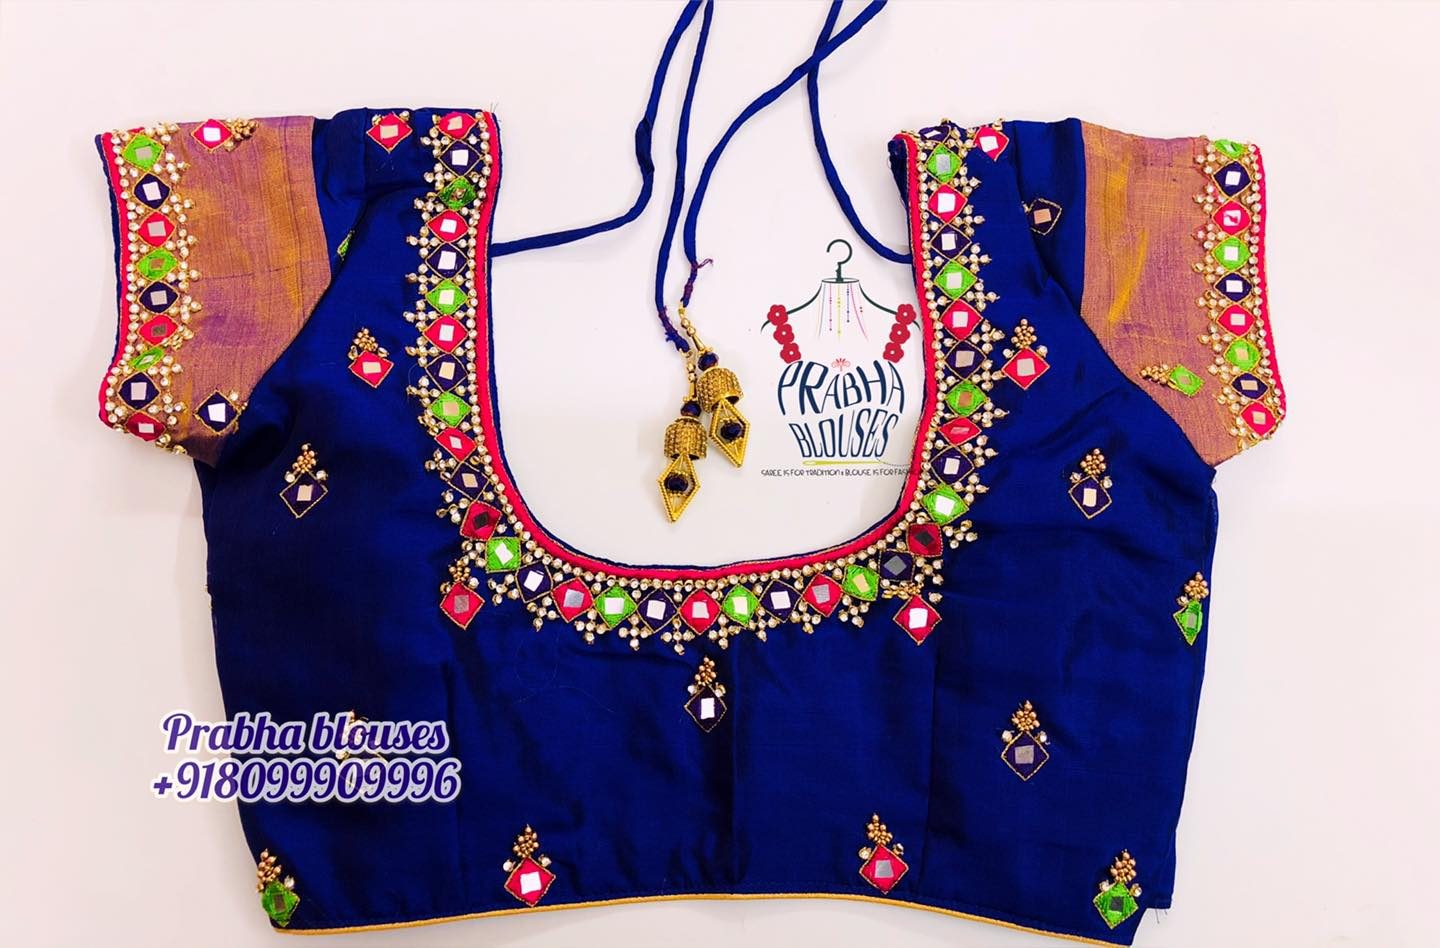 Stunning blue color designer blouse with hand embroidery mirror thread and kundan mmaggam work.  2021-02-05